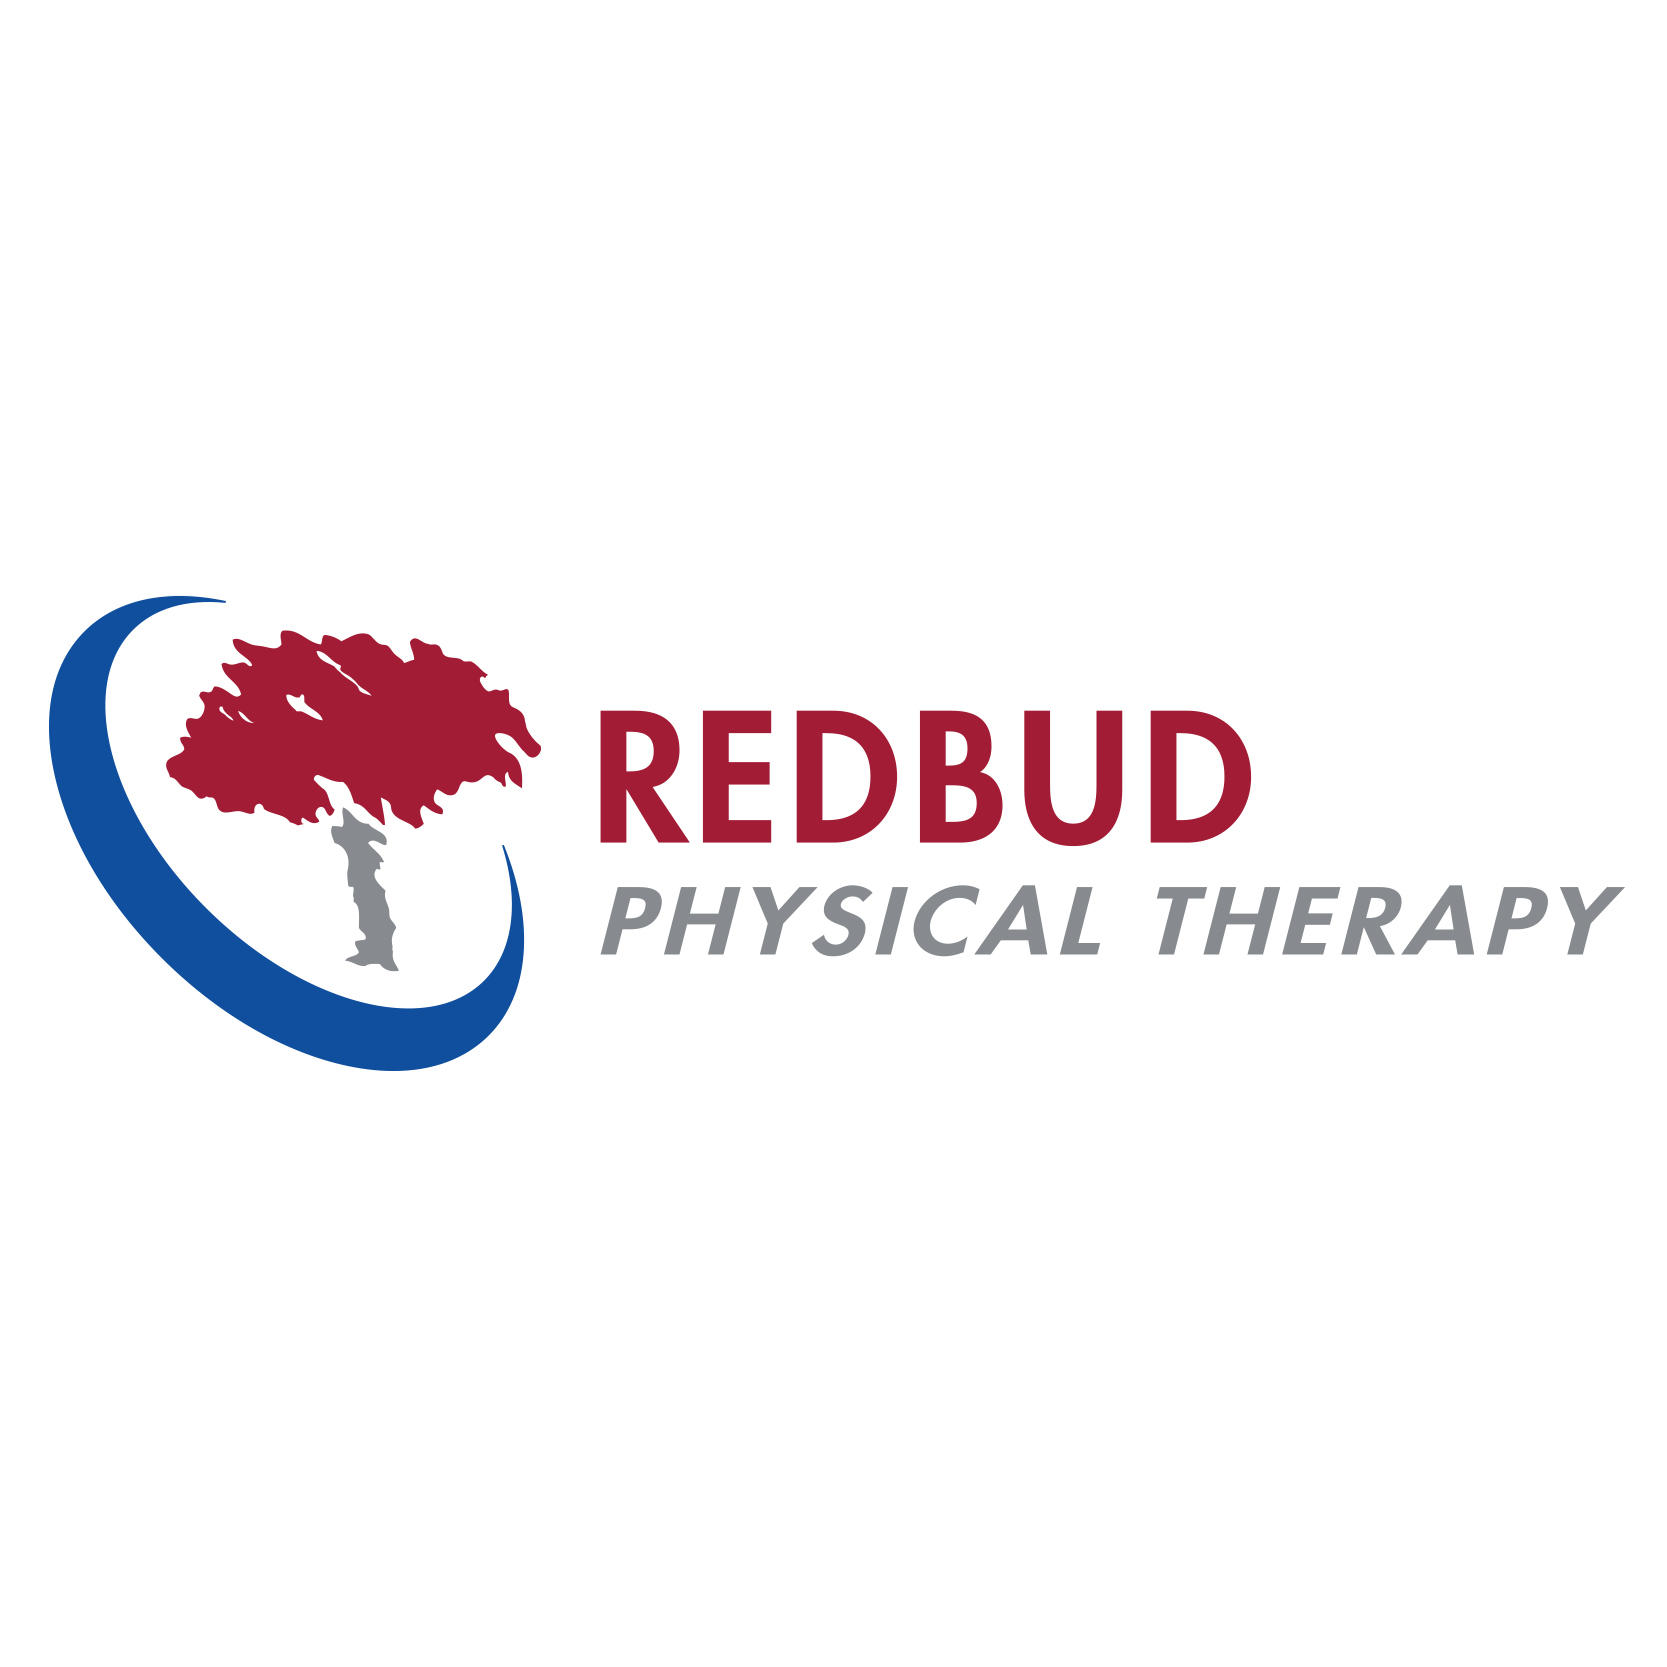 Redbud Physical Therapy - Tulsa, OK - Physical Therapy & Rehab